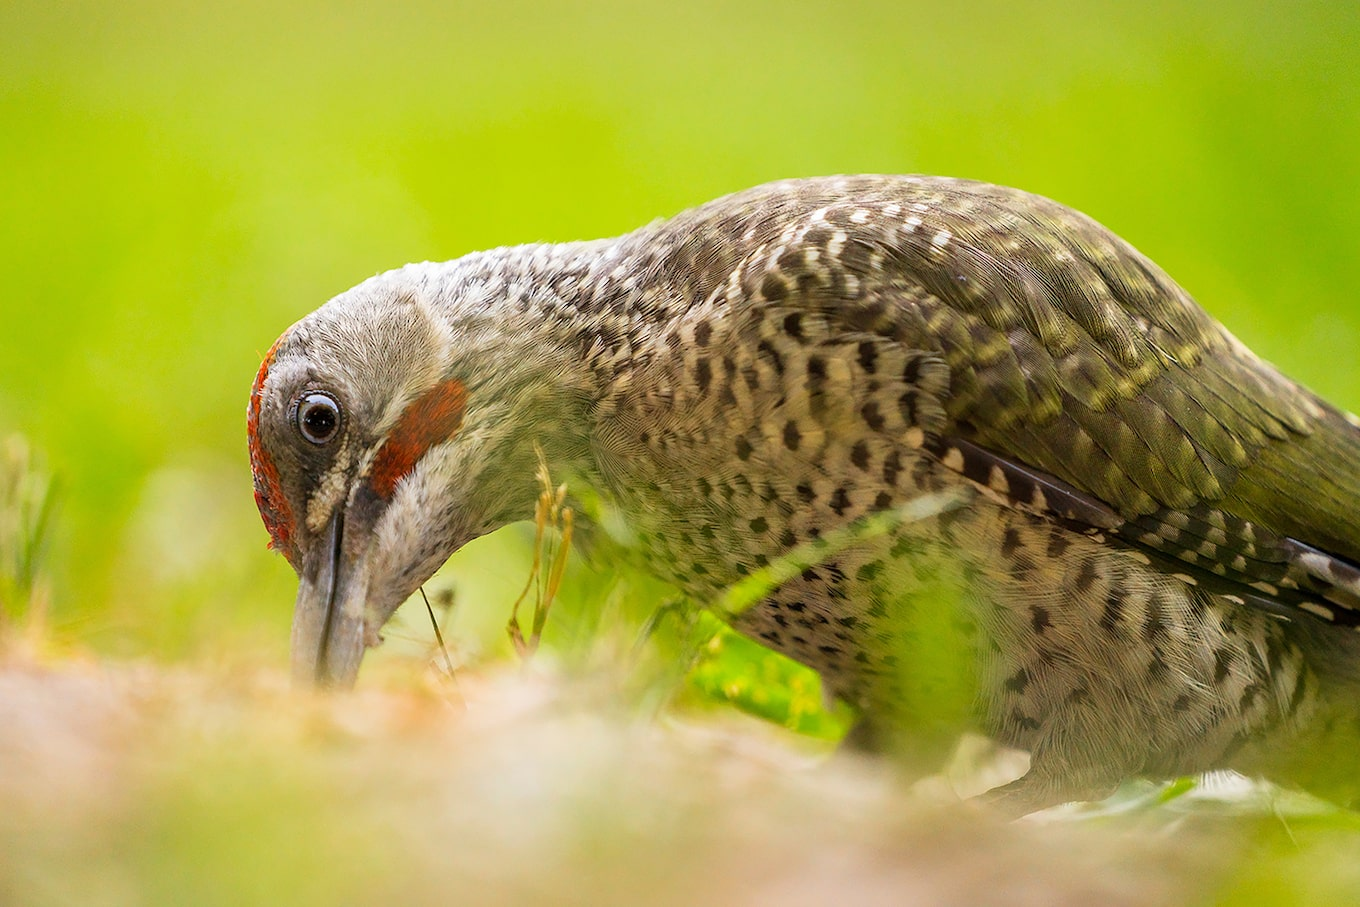 javier-aznar-sony-alpha-7RIII-bird-examines-the-ground-for-food